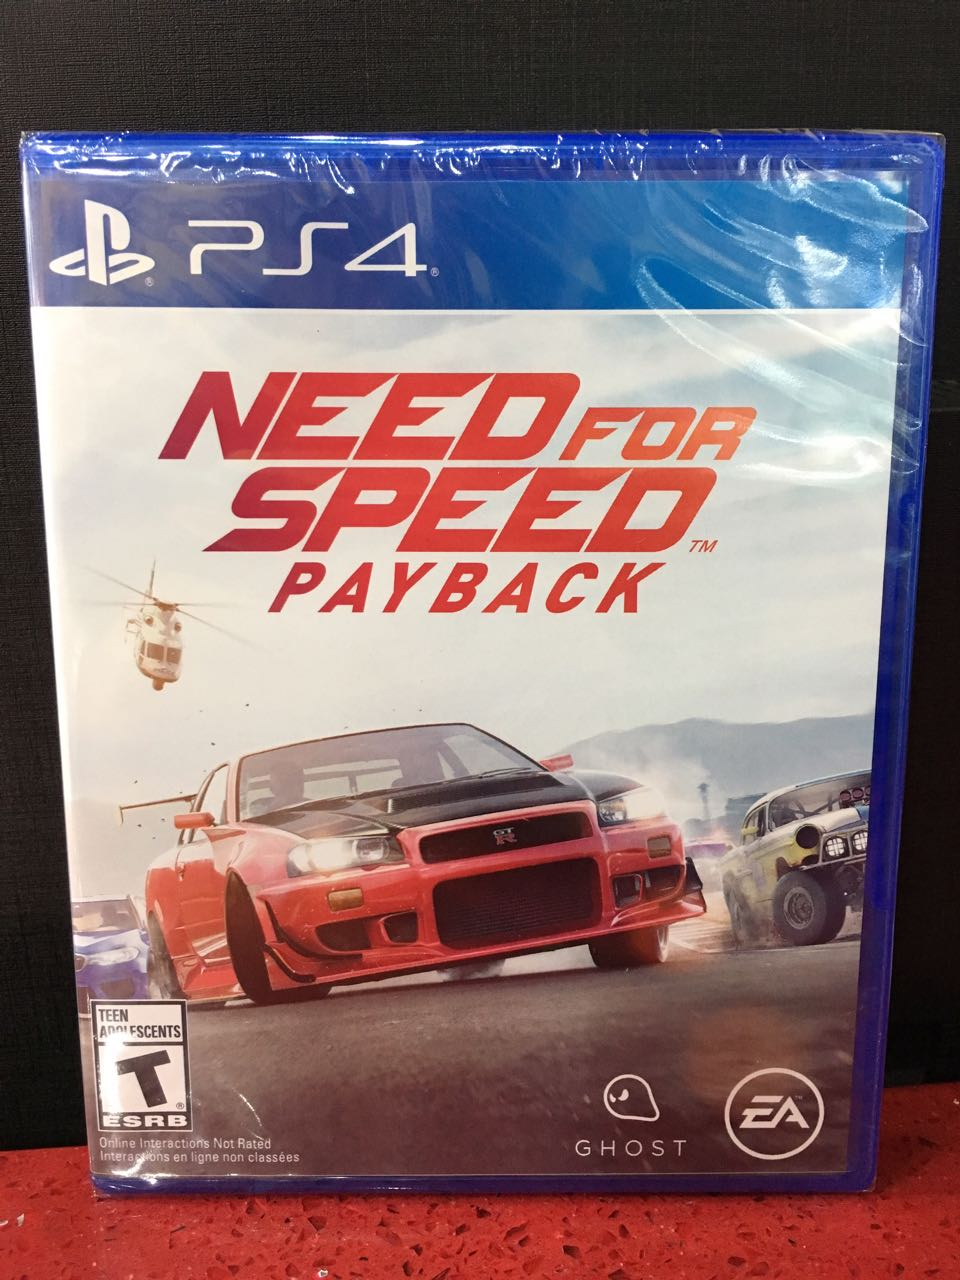 Ps4 Need For Speed Payback Gamestation Game